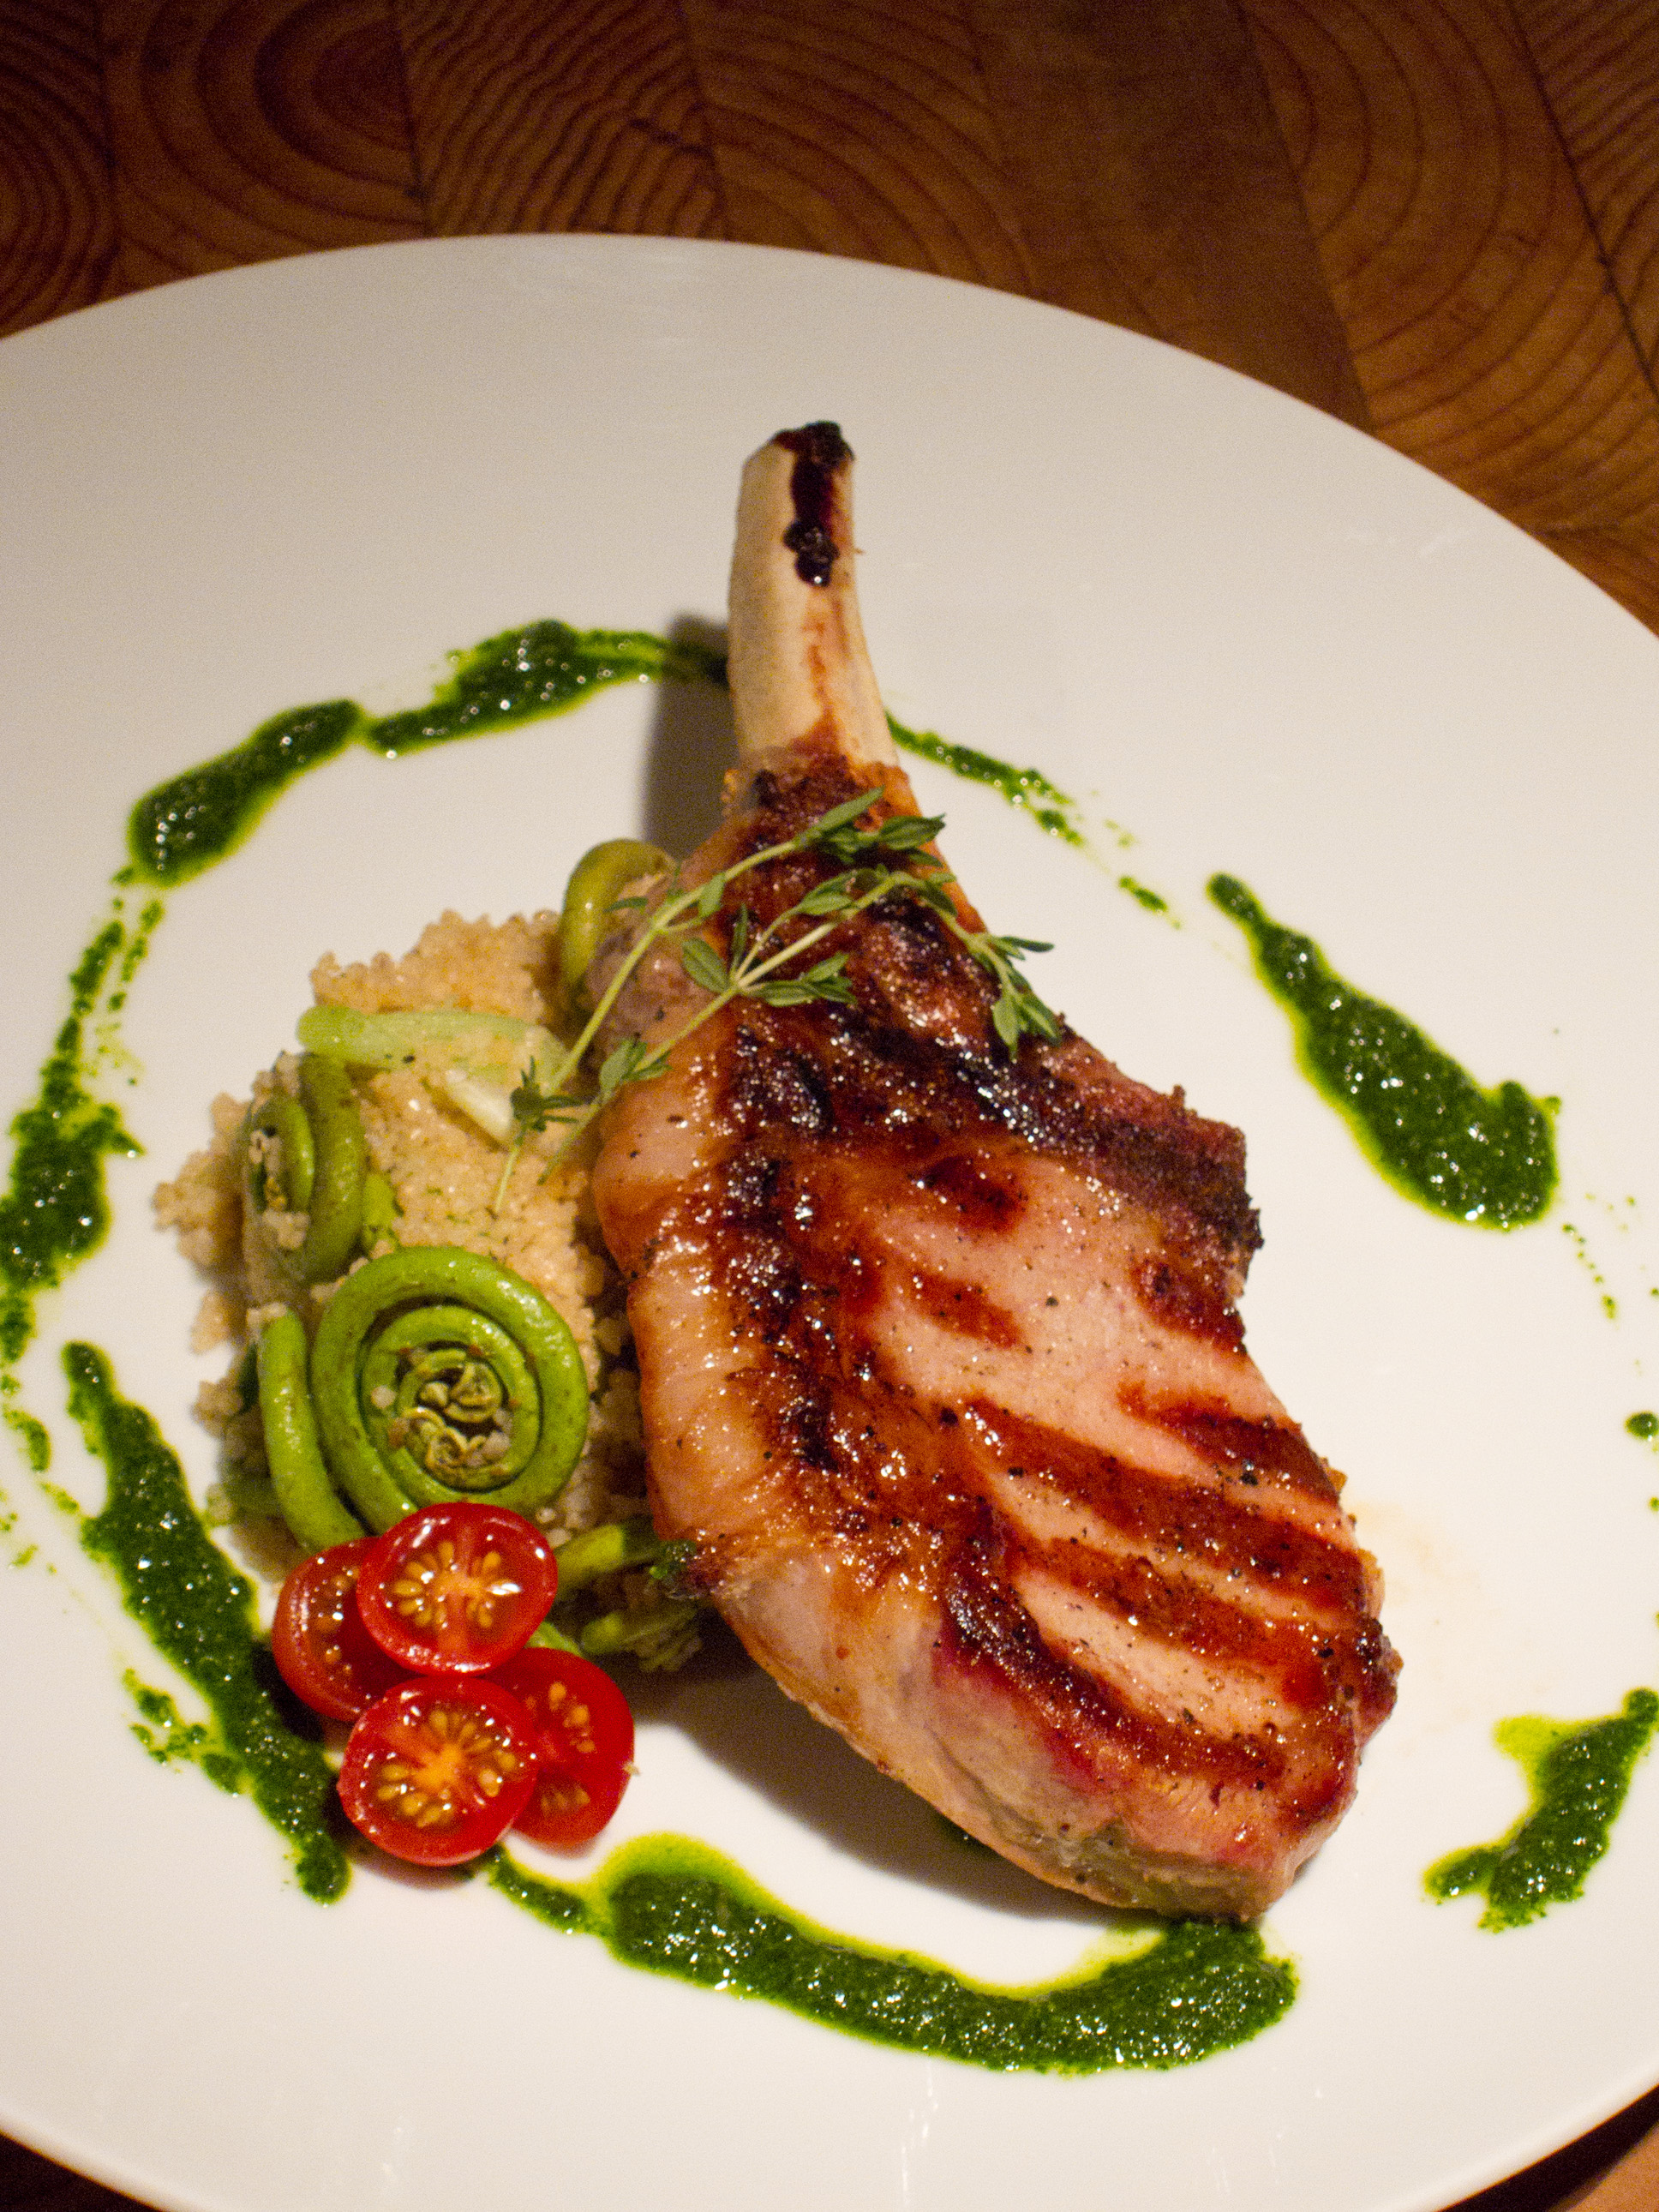 Grilled Pork with Fiddlehead Ferns, Spring Garlic Couscous and Nasturtium Pesto